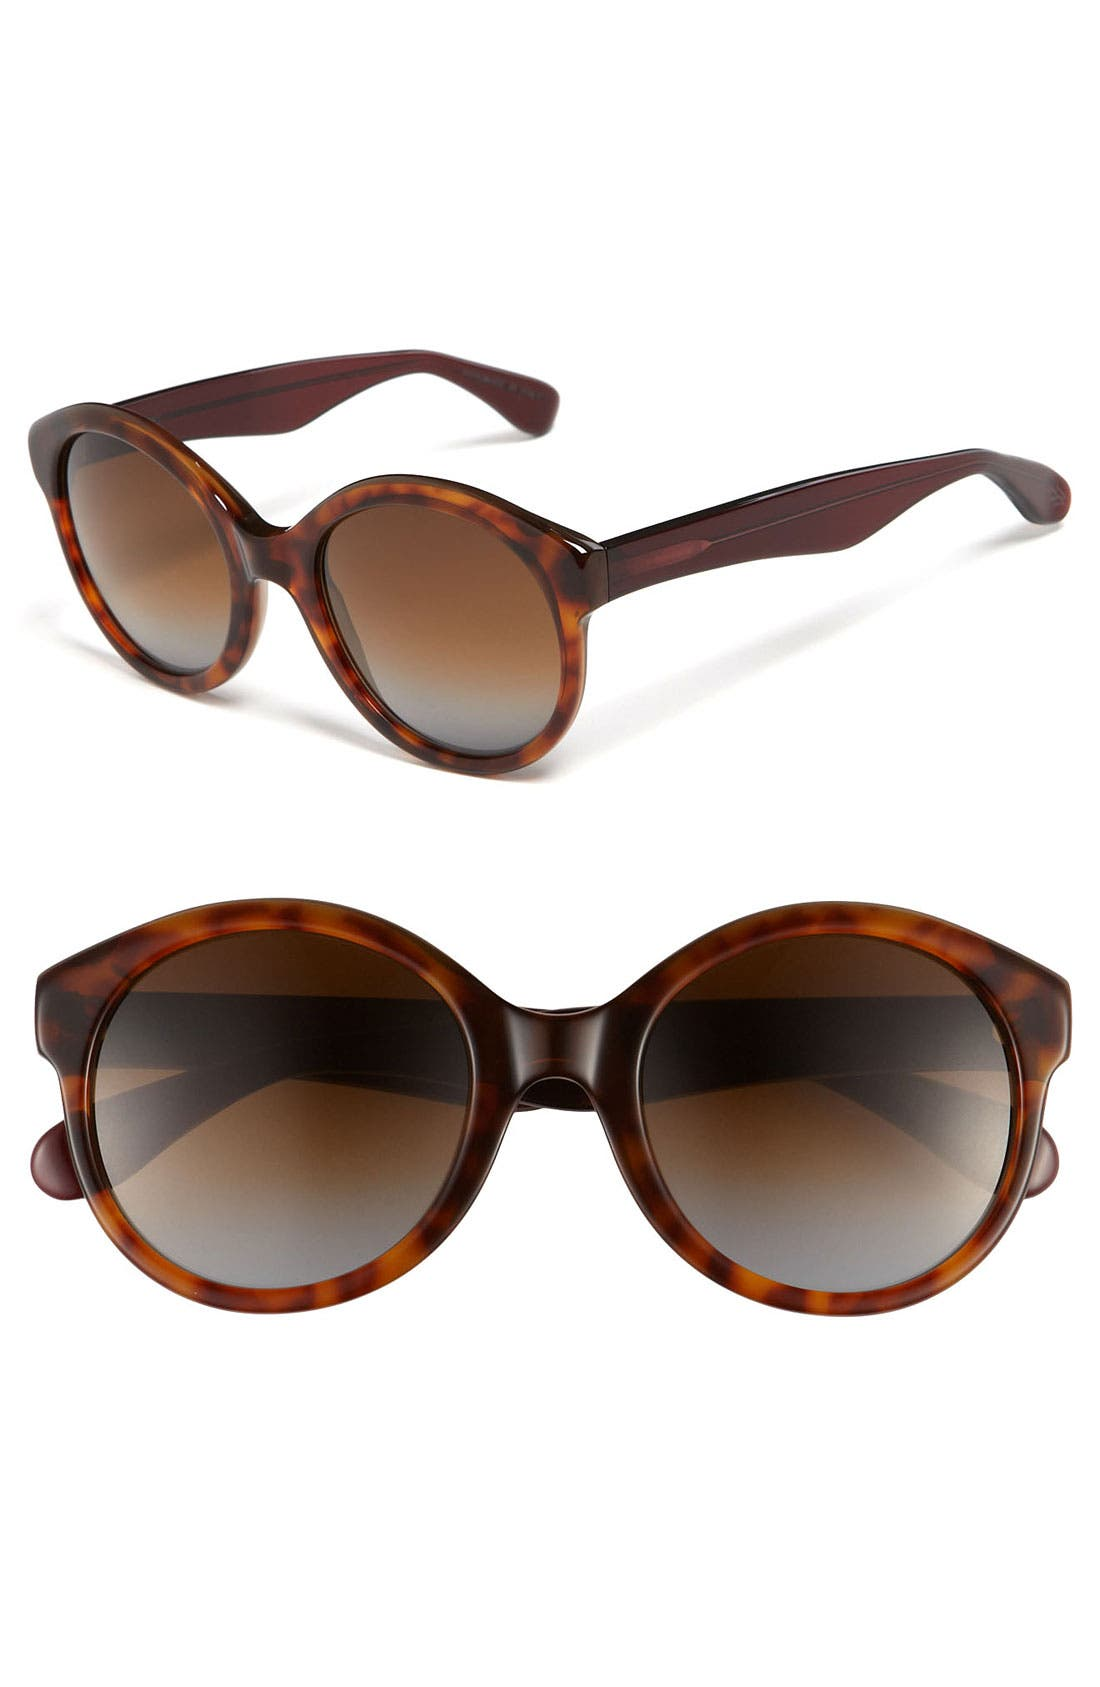 Main Image - Vera Wang Small Round Sunglasses